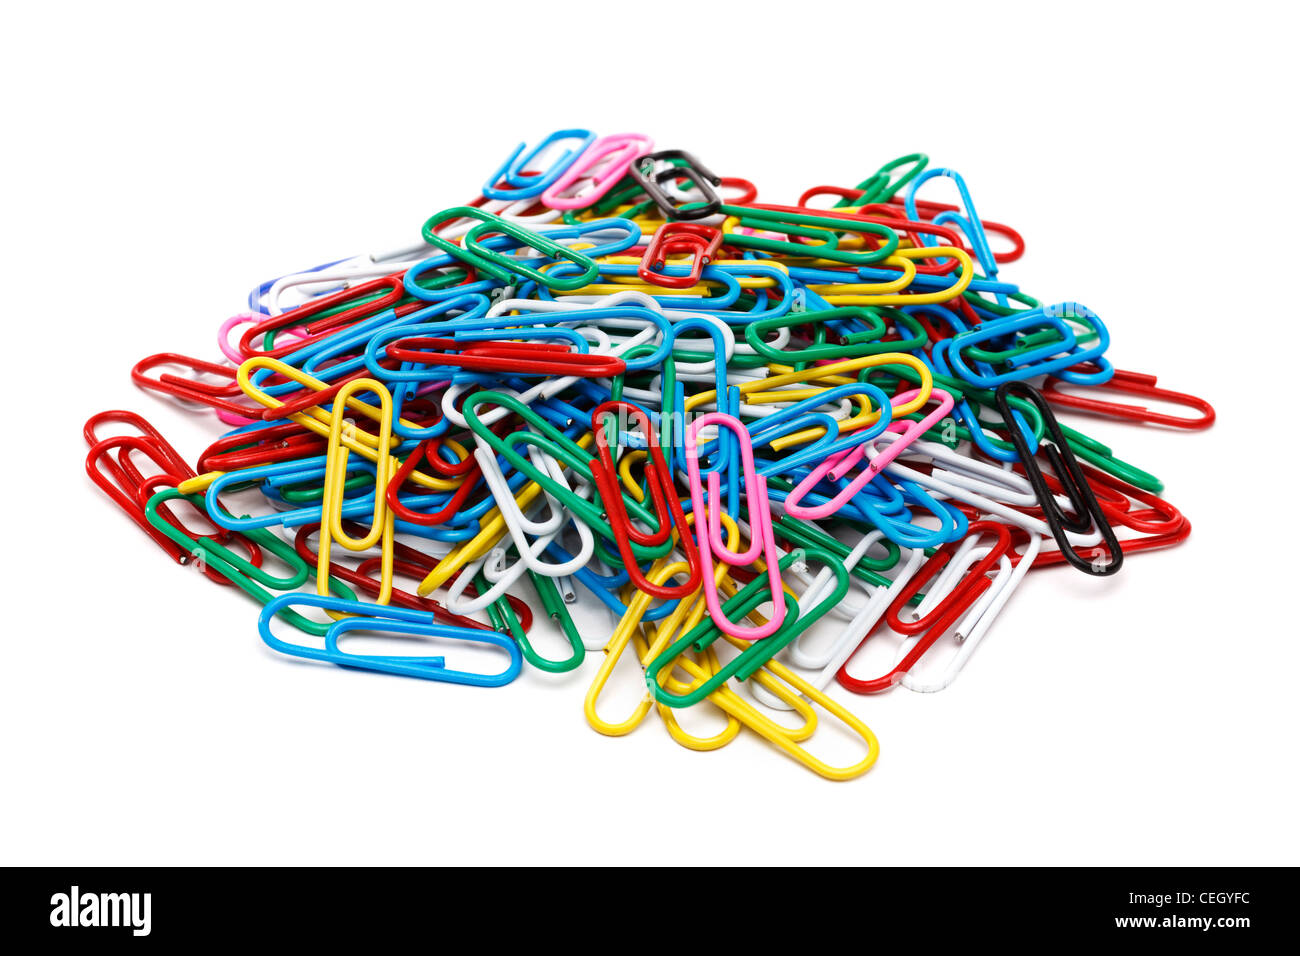 Pile of paper clips on white background - Stock Image